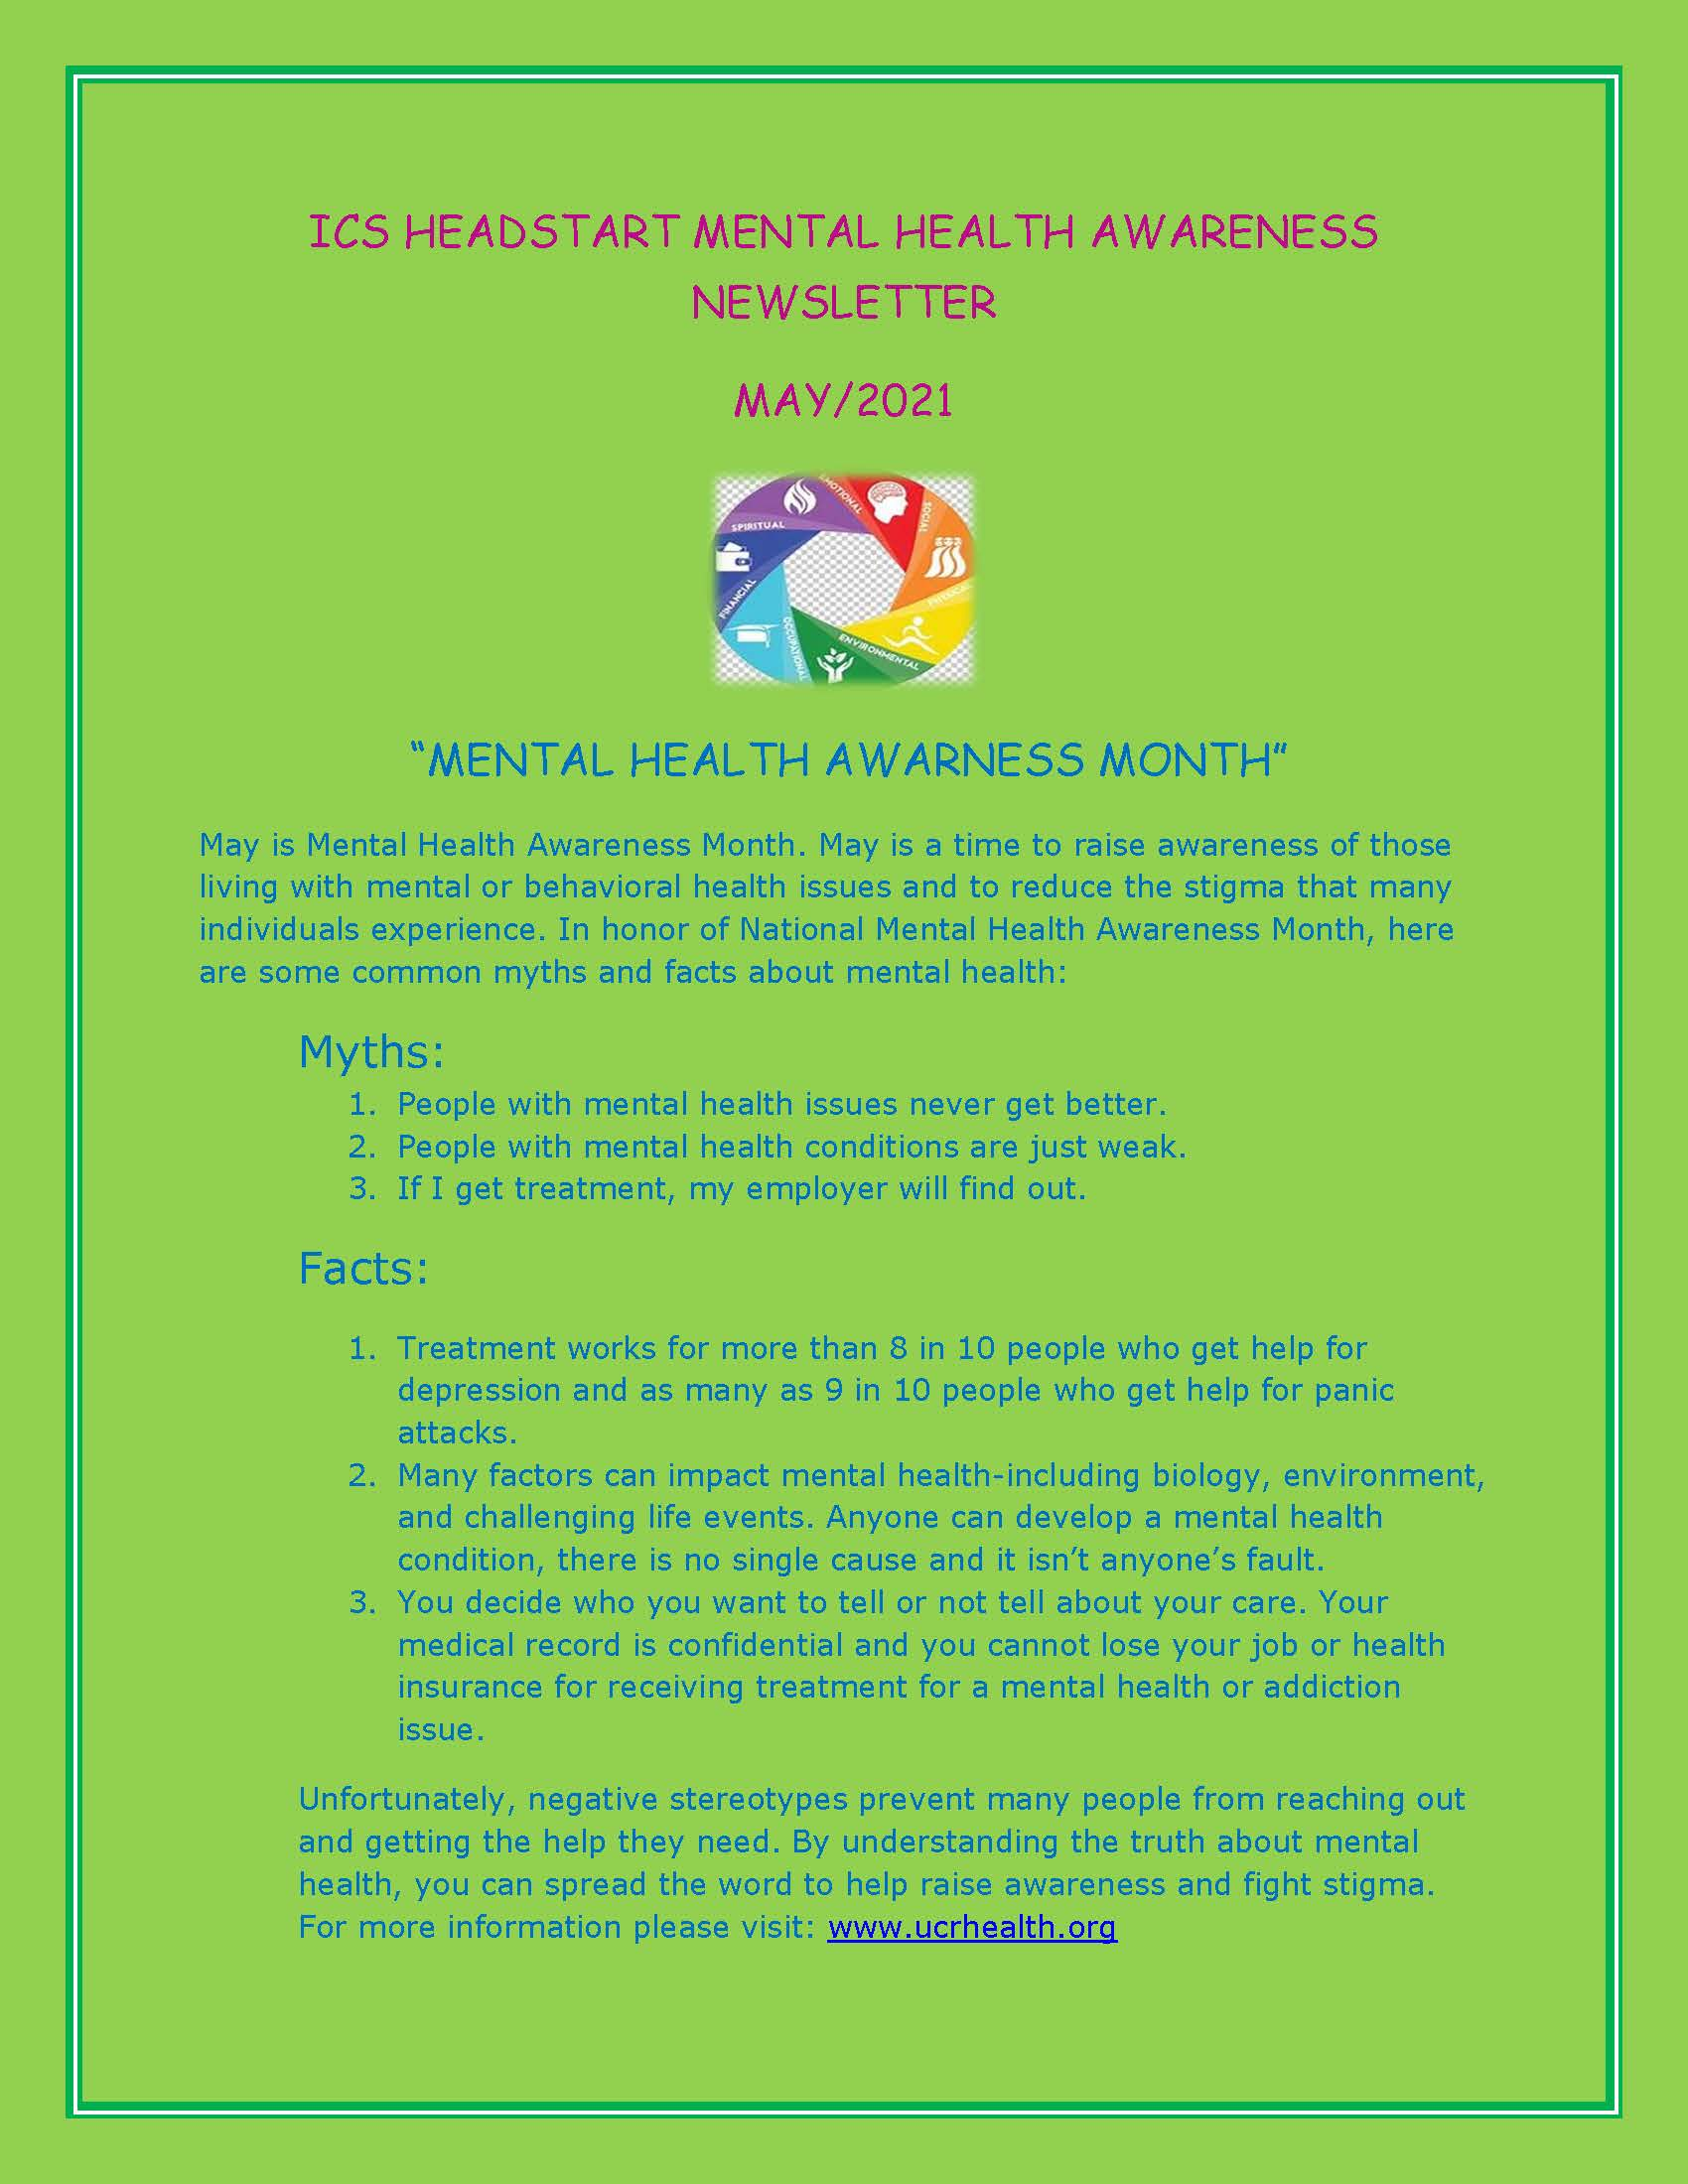 MAY ICS HEADSTART MENTAL HEALTH AWARENESS NEWSLETTER_Page_1